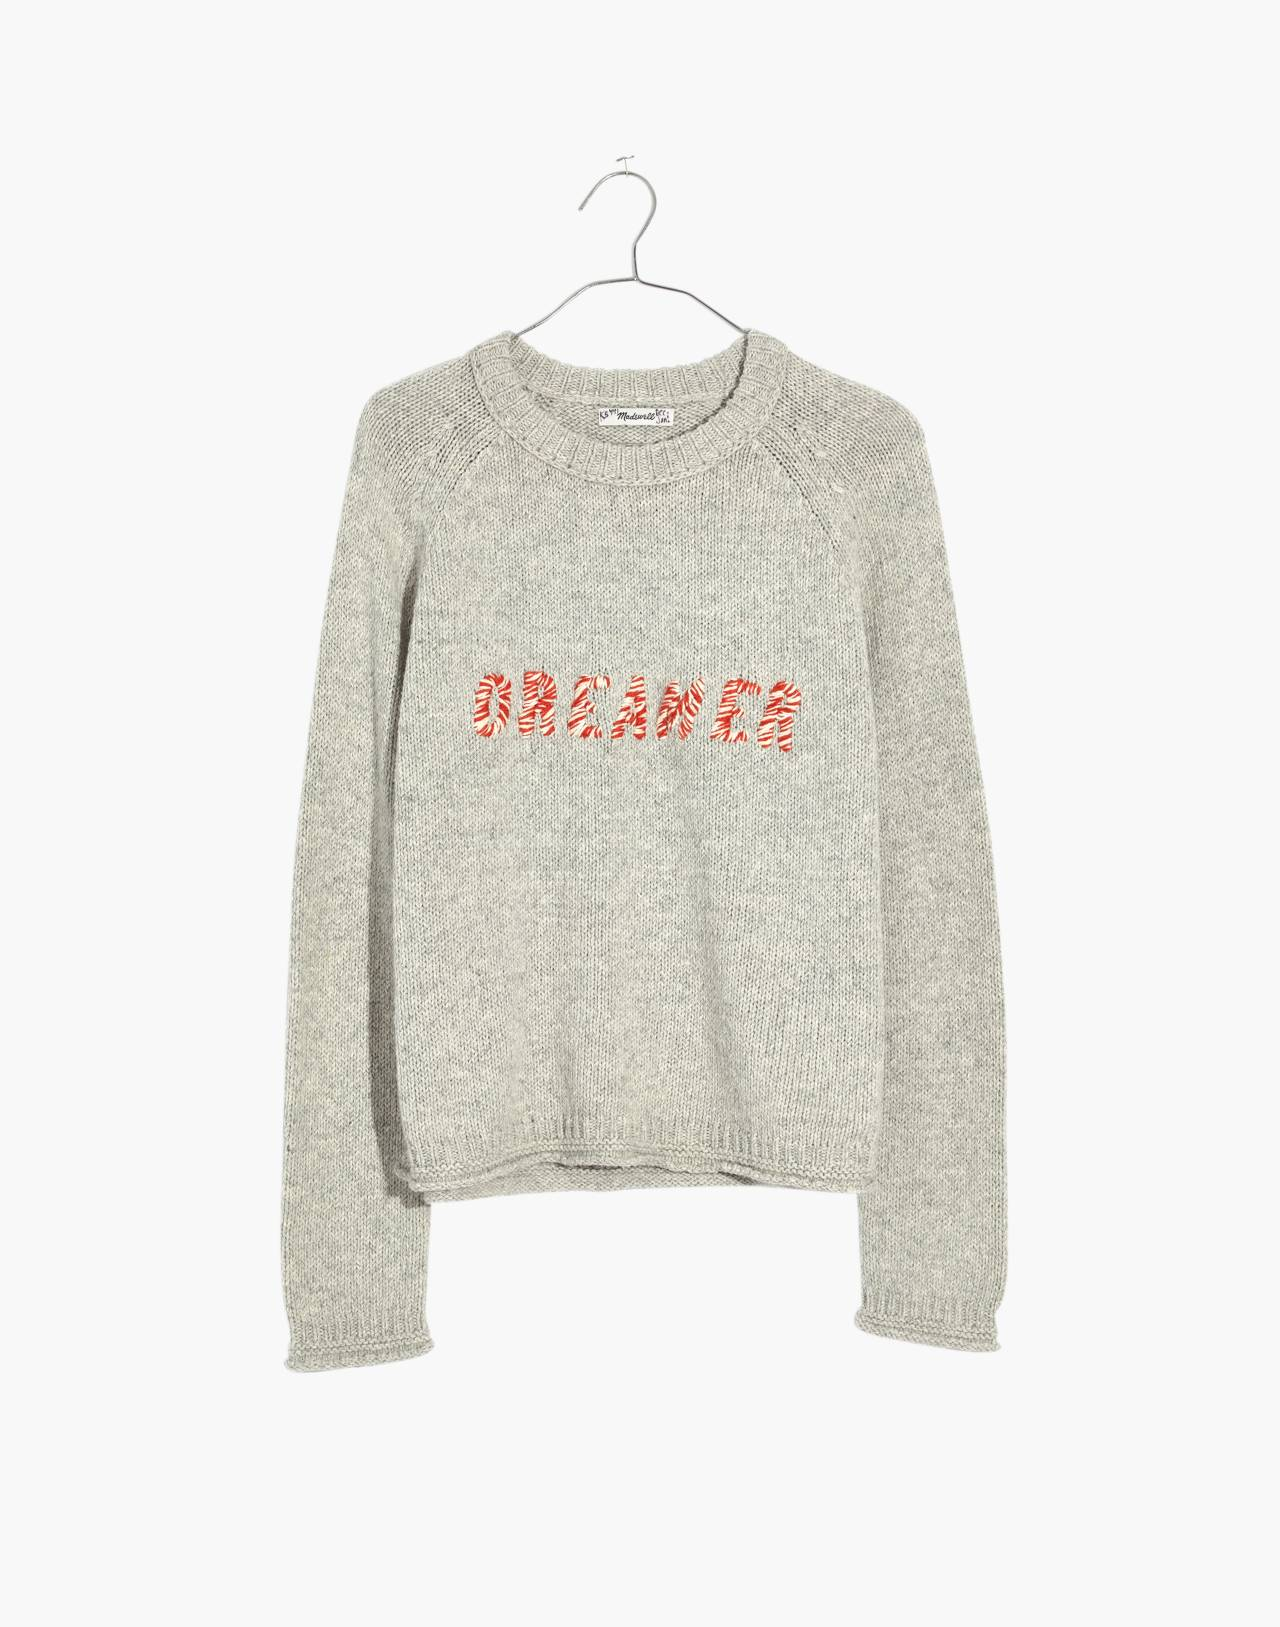 Dreamer Embroidered Keaton Pullover Sweater in heather pebble image 4